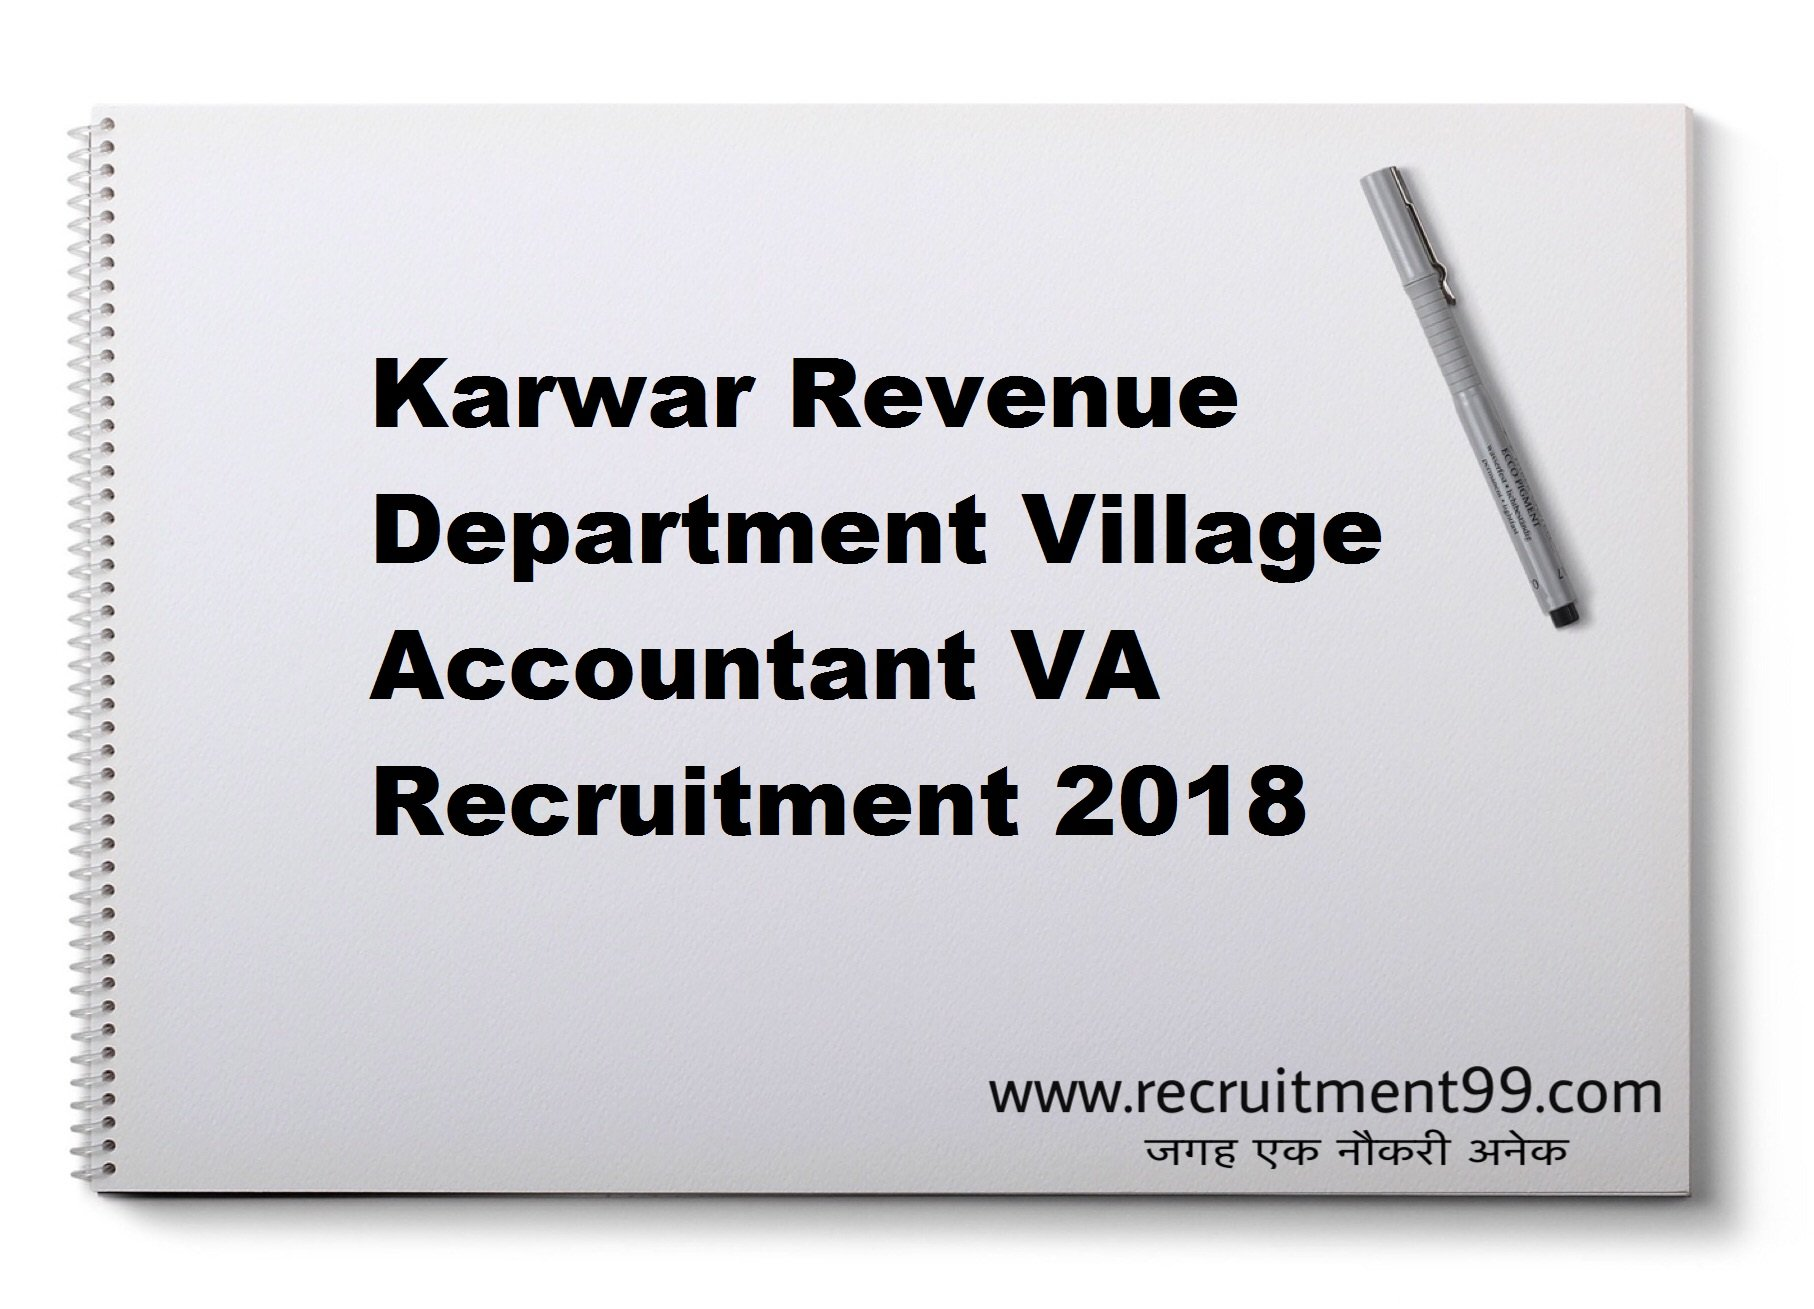 Karwar Revenue Department Village Accountant VA Recruitment Admit Card Result 2018